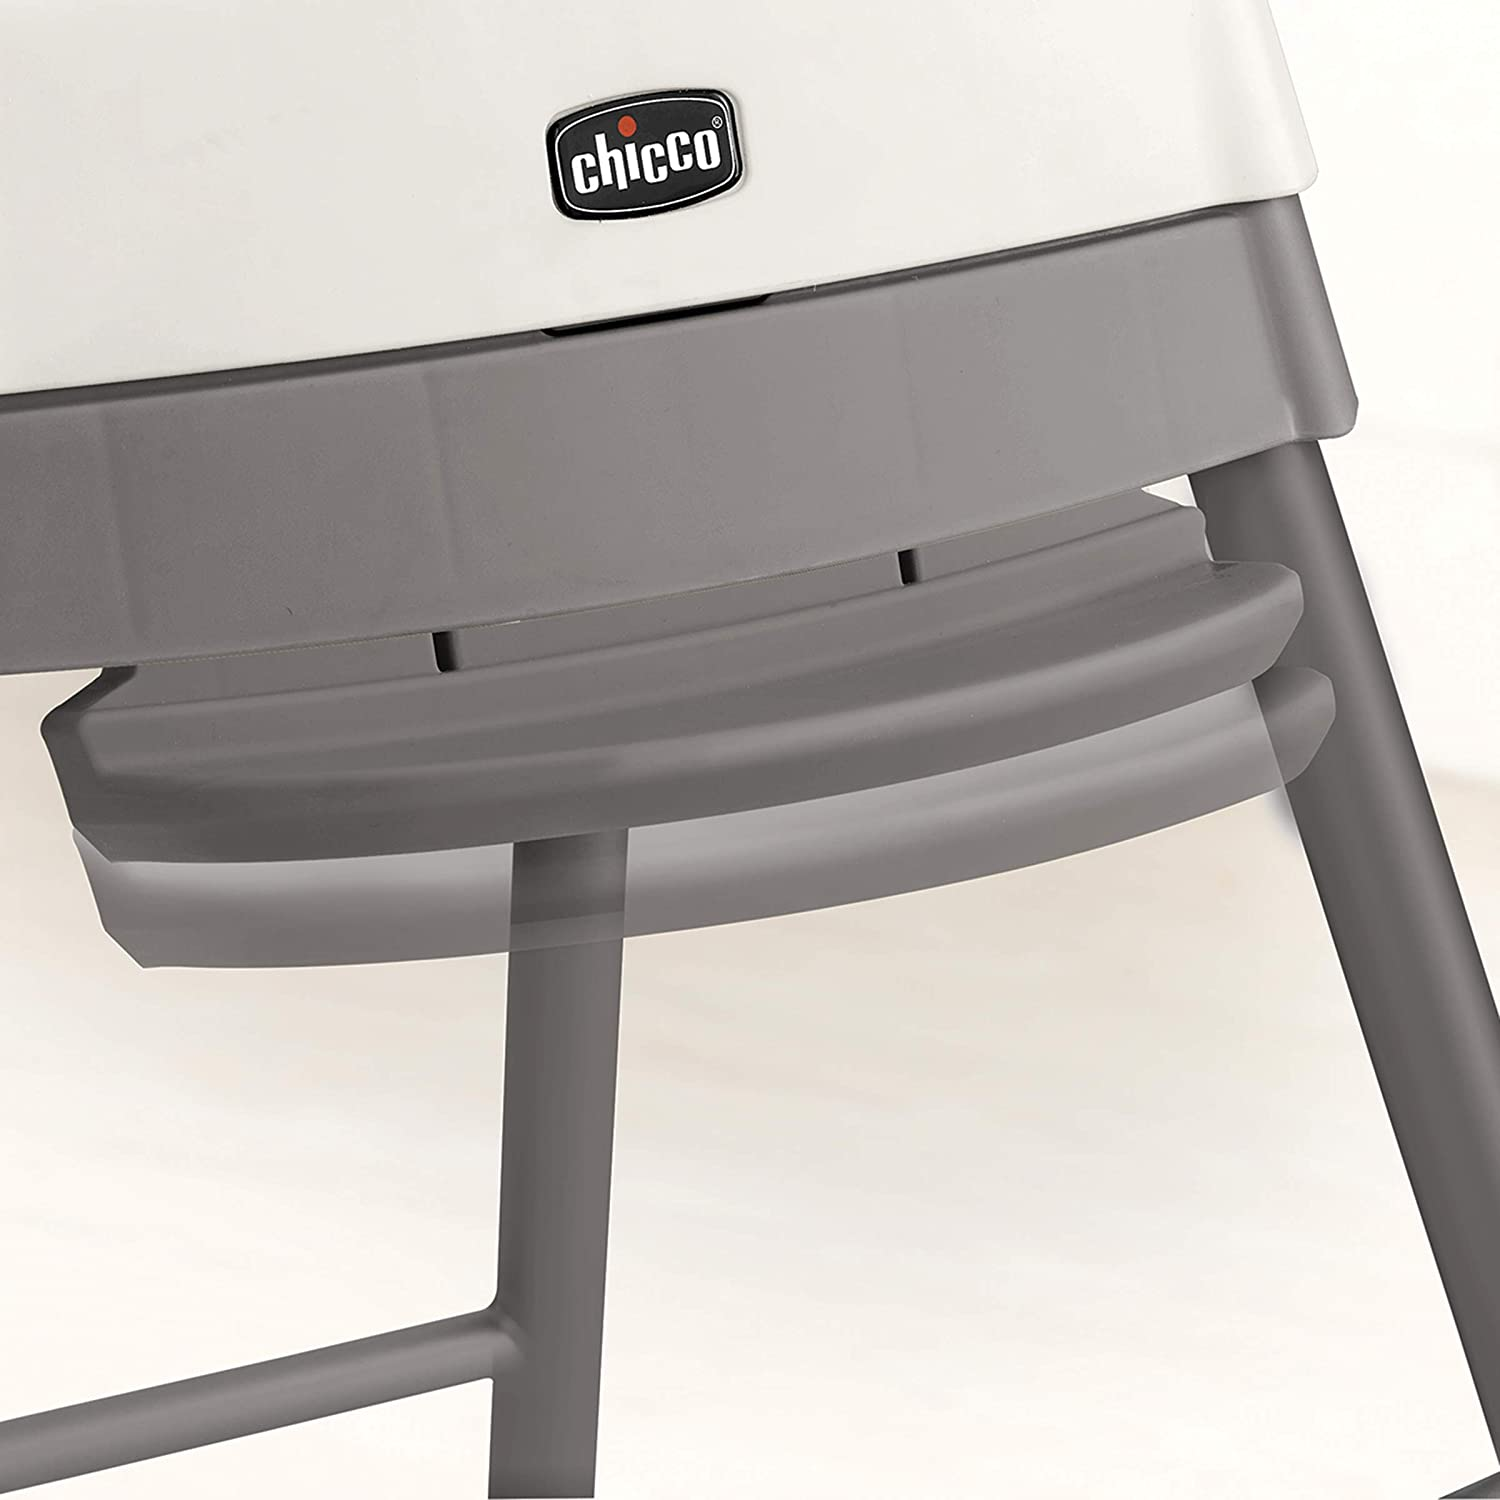 Chicco Stack 3 in 1 Highchair, Weave: Amazon.co.uk: Baby